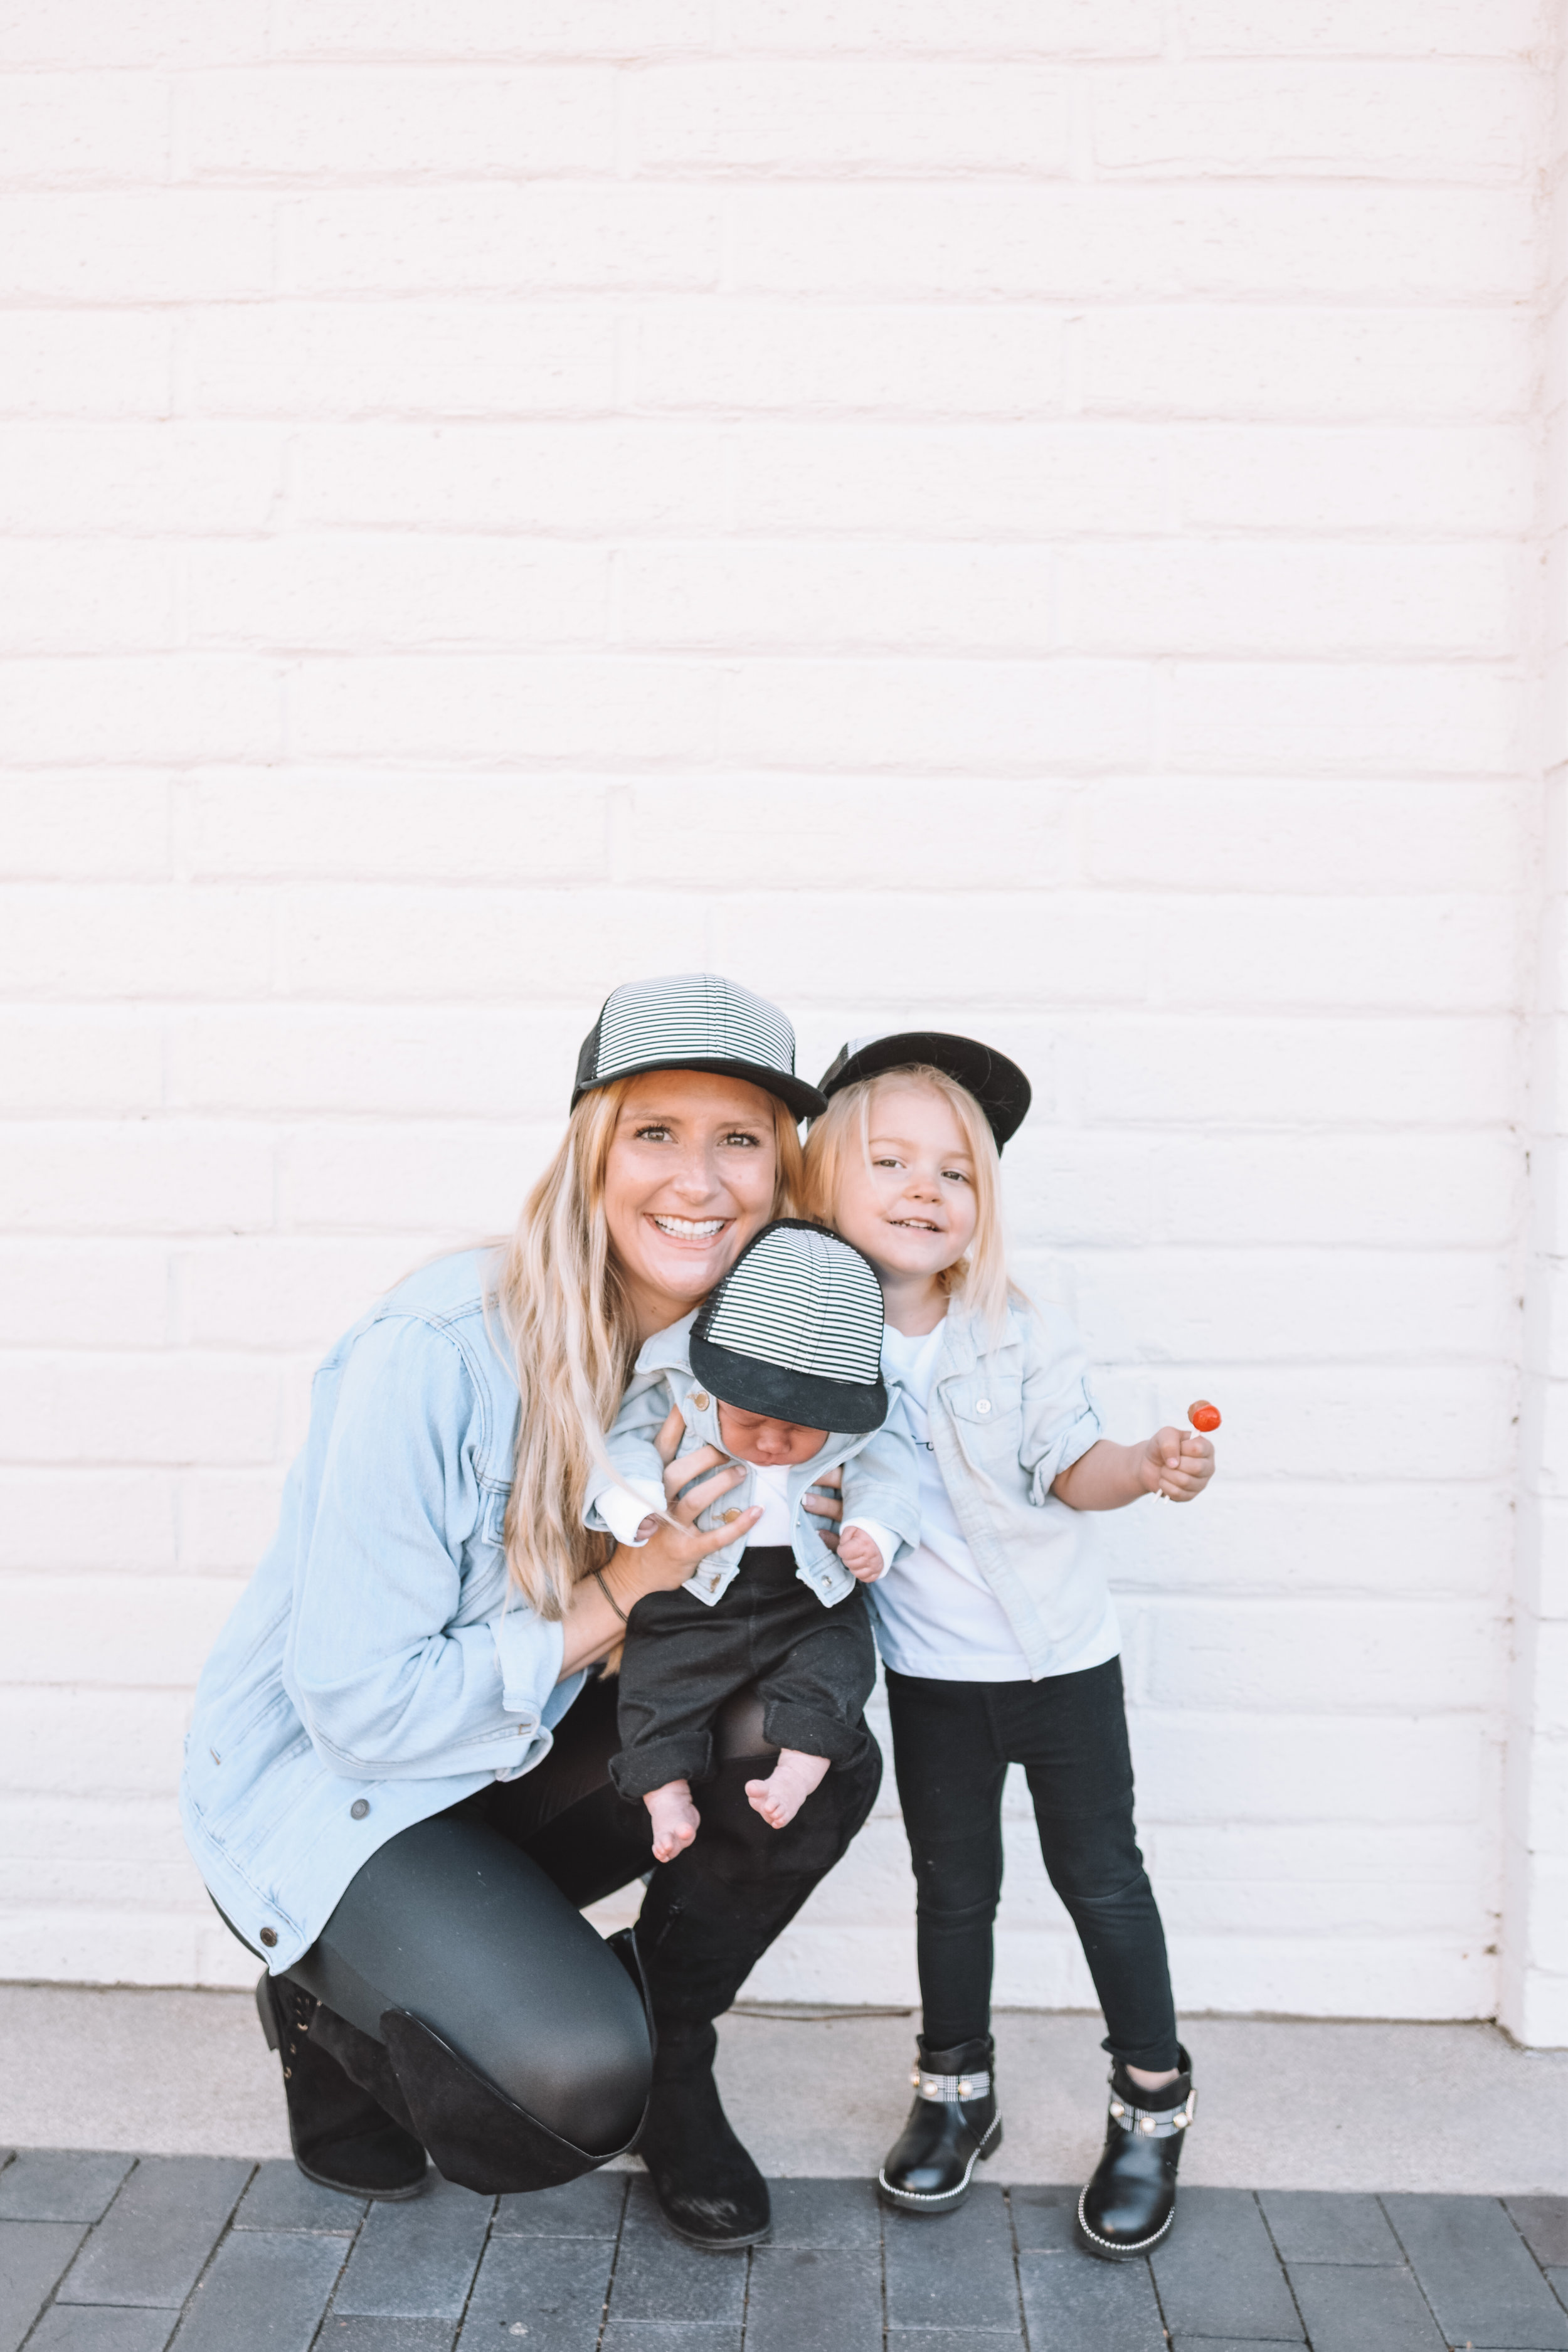 Mommy Son Daughter Fashion - Mommy and Me Clothes - The Overwhelmed Mommy Blogger